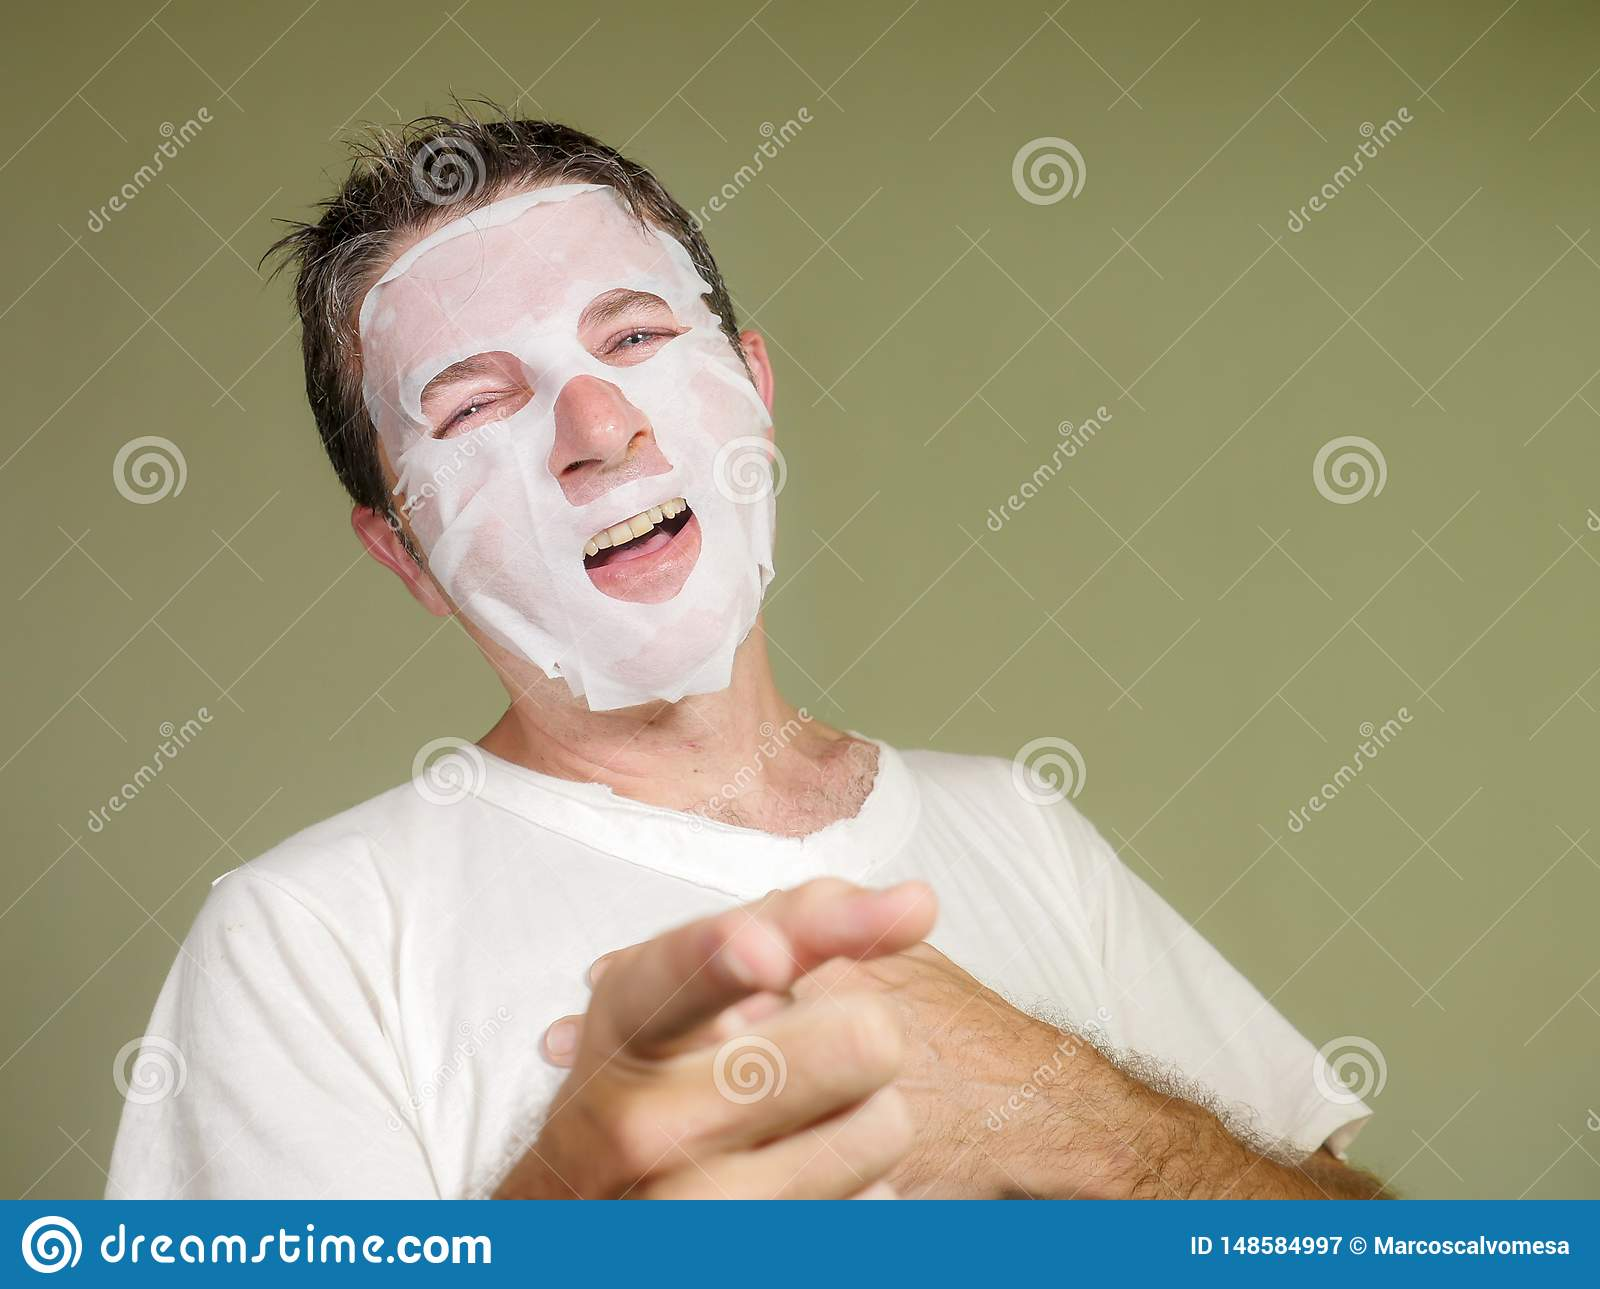 Natural portrait of young happy and funny man applying beauty facial mask looking in the mirror laughing cheerful finding himself